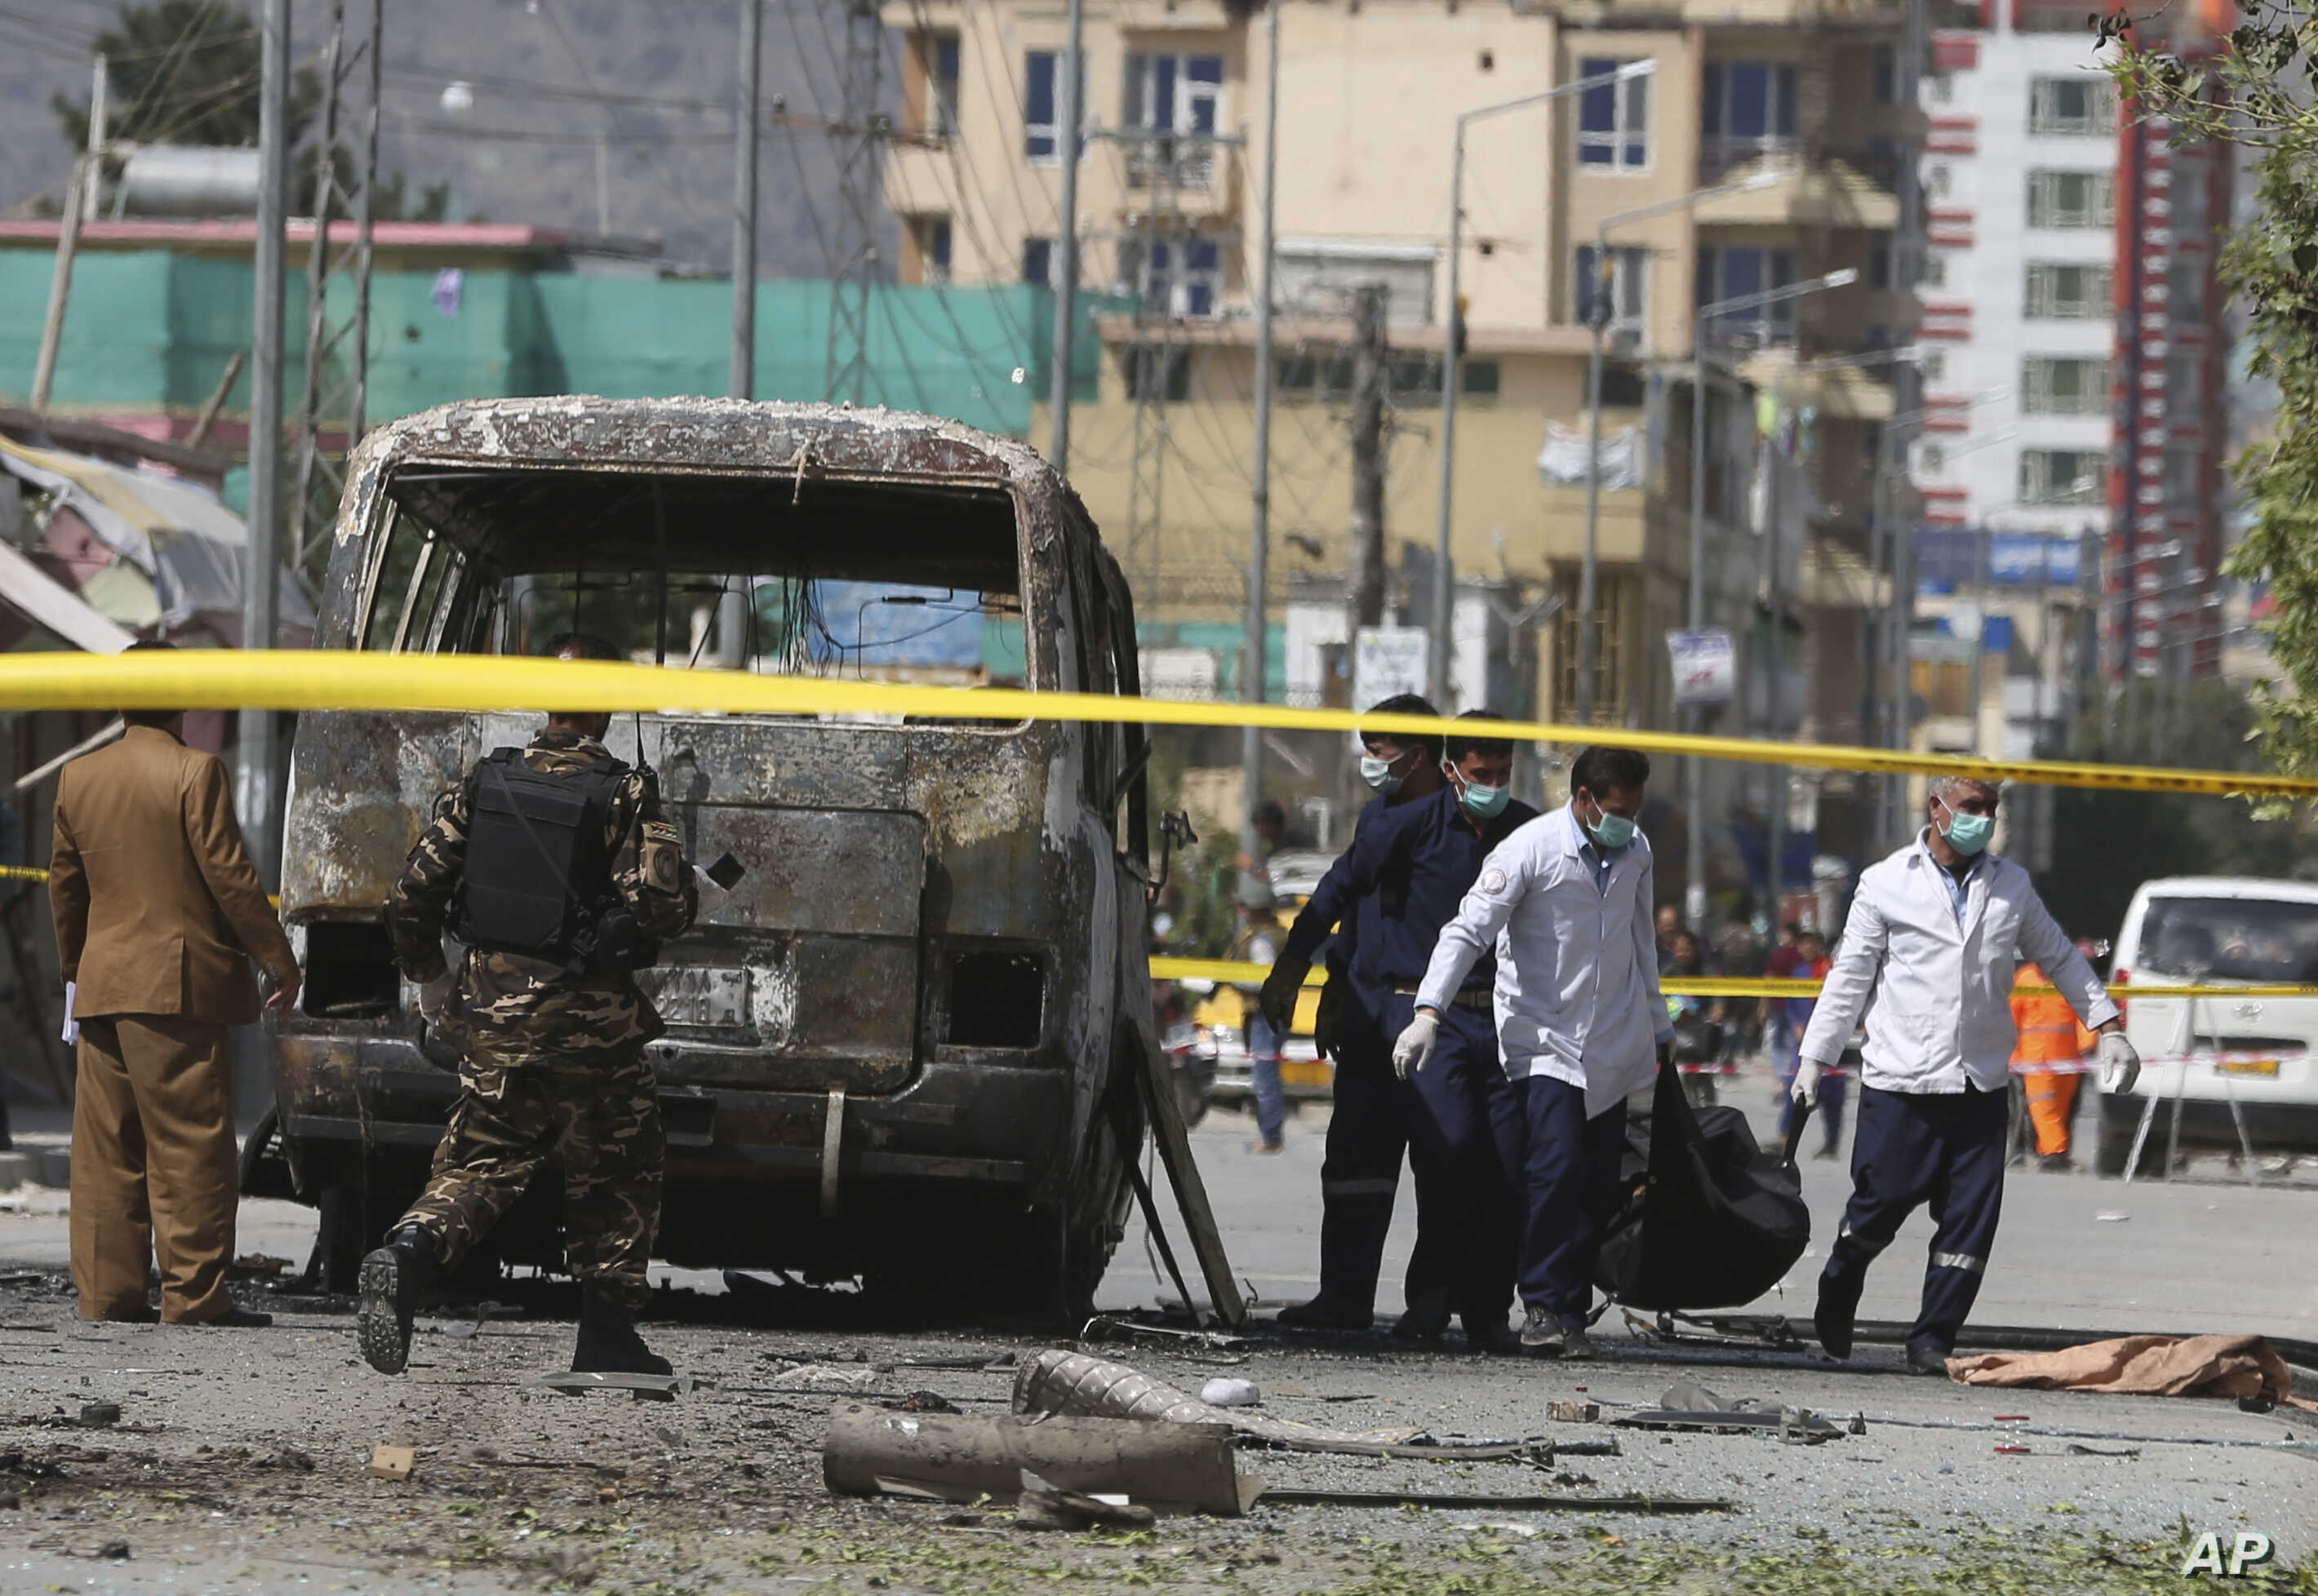 Deadly Bus Blast Rattles Afghan Capital on Eve of Eid | Voice of America -  English